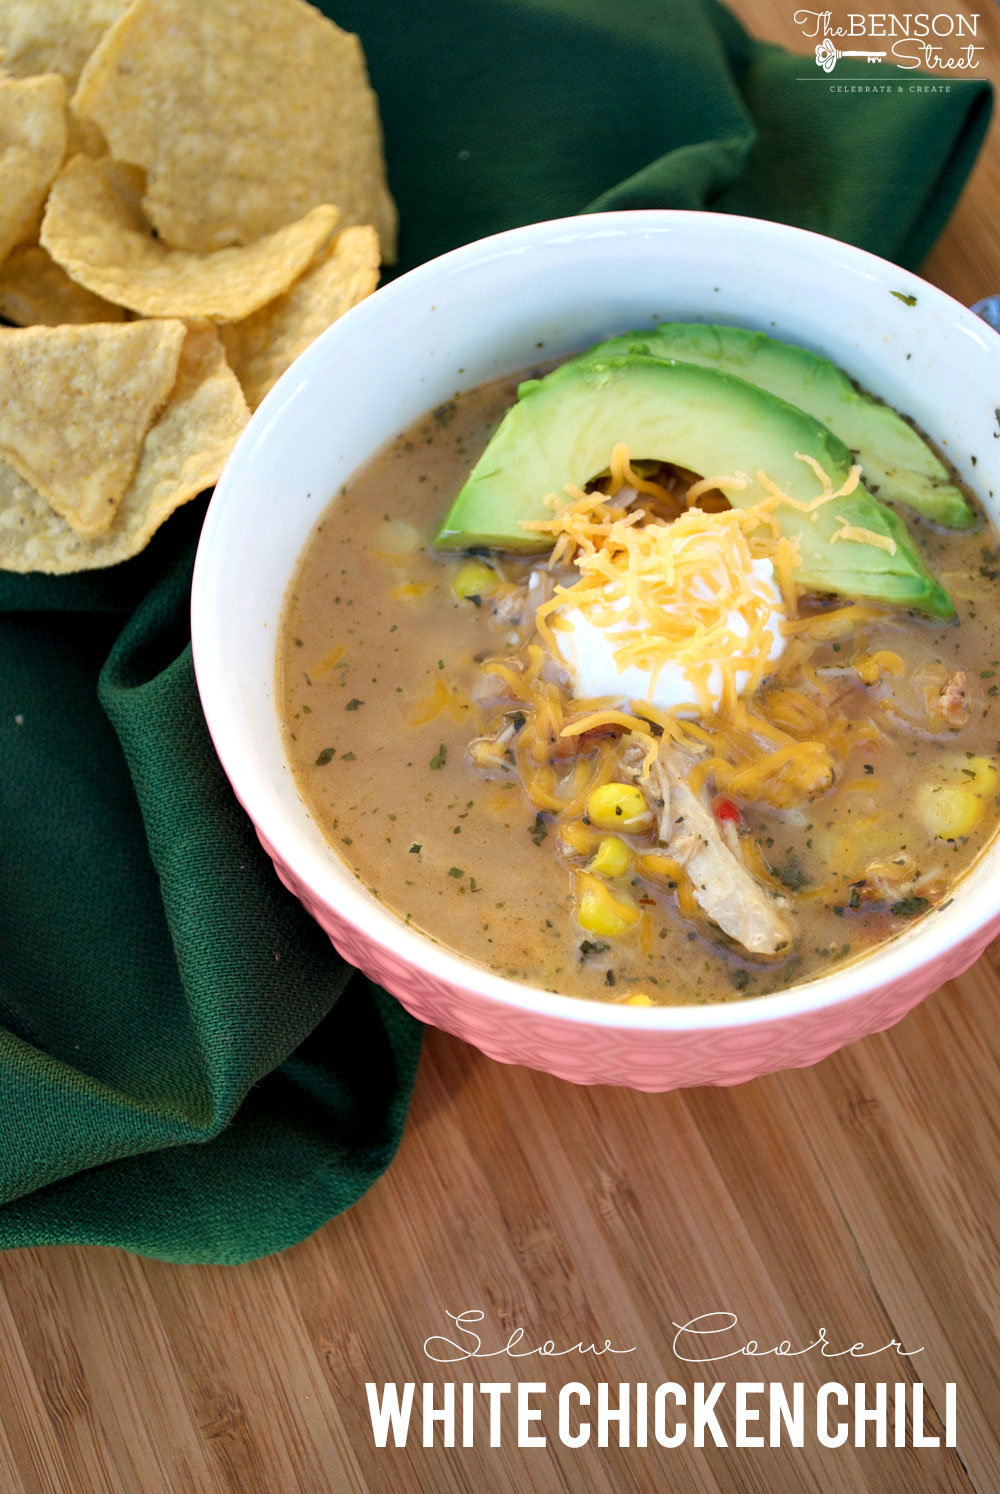 A filling, easy, and delicious dinner recipe for slow cooker white chicken chili. Full of lots of nutritious veggies, beans, and more.Get the recipe at thebensonstreet.com